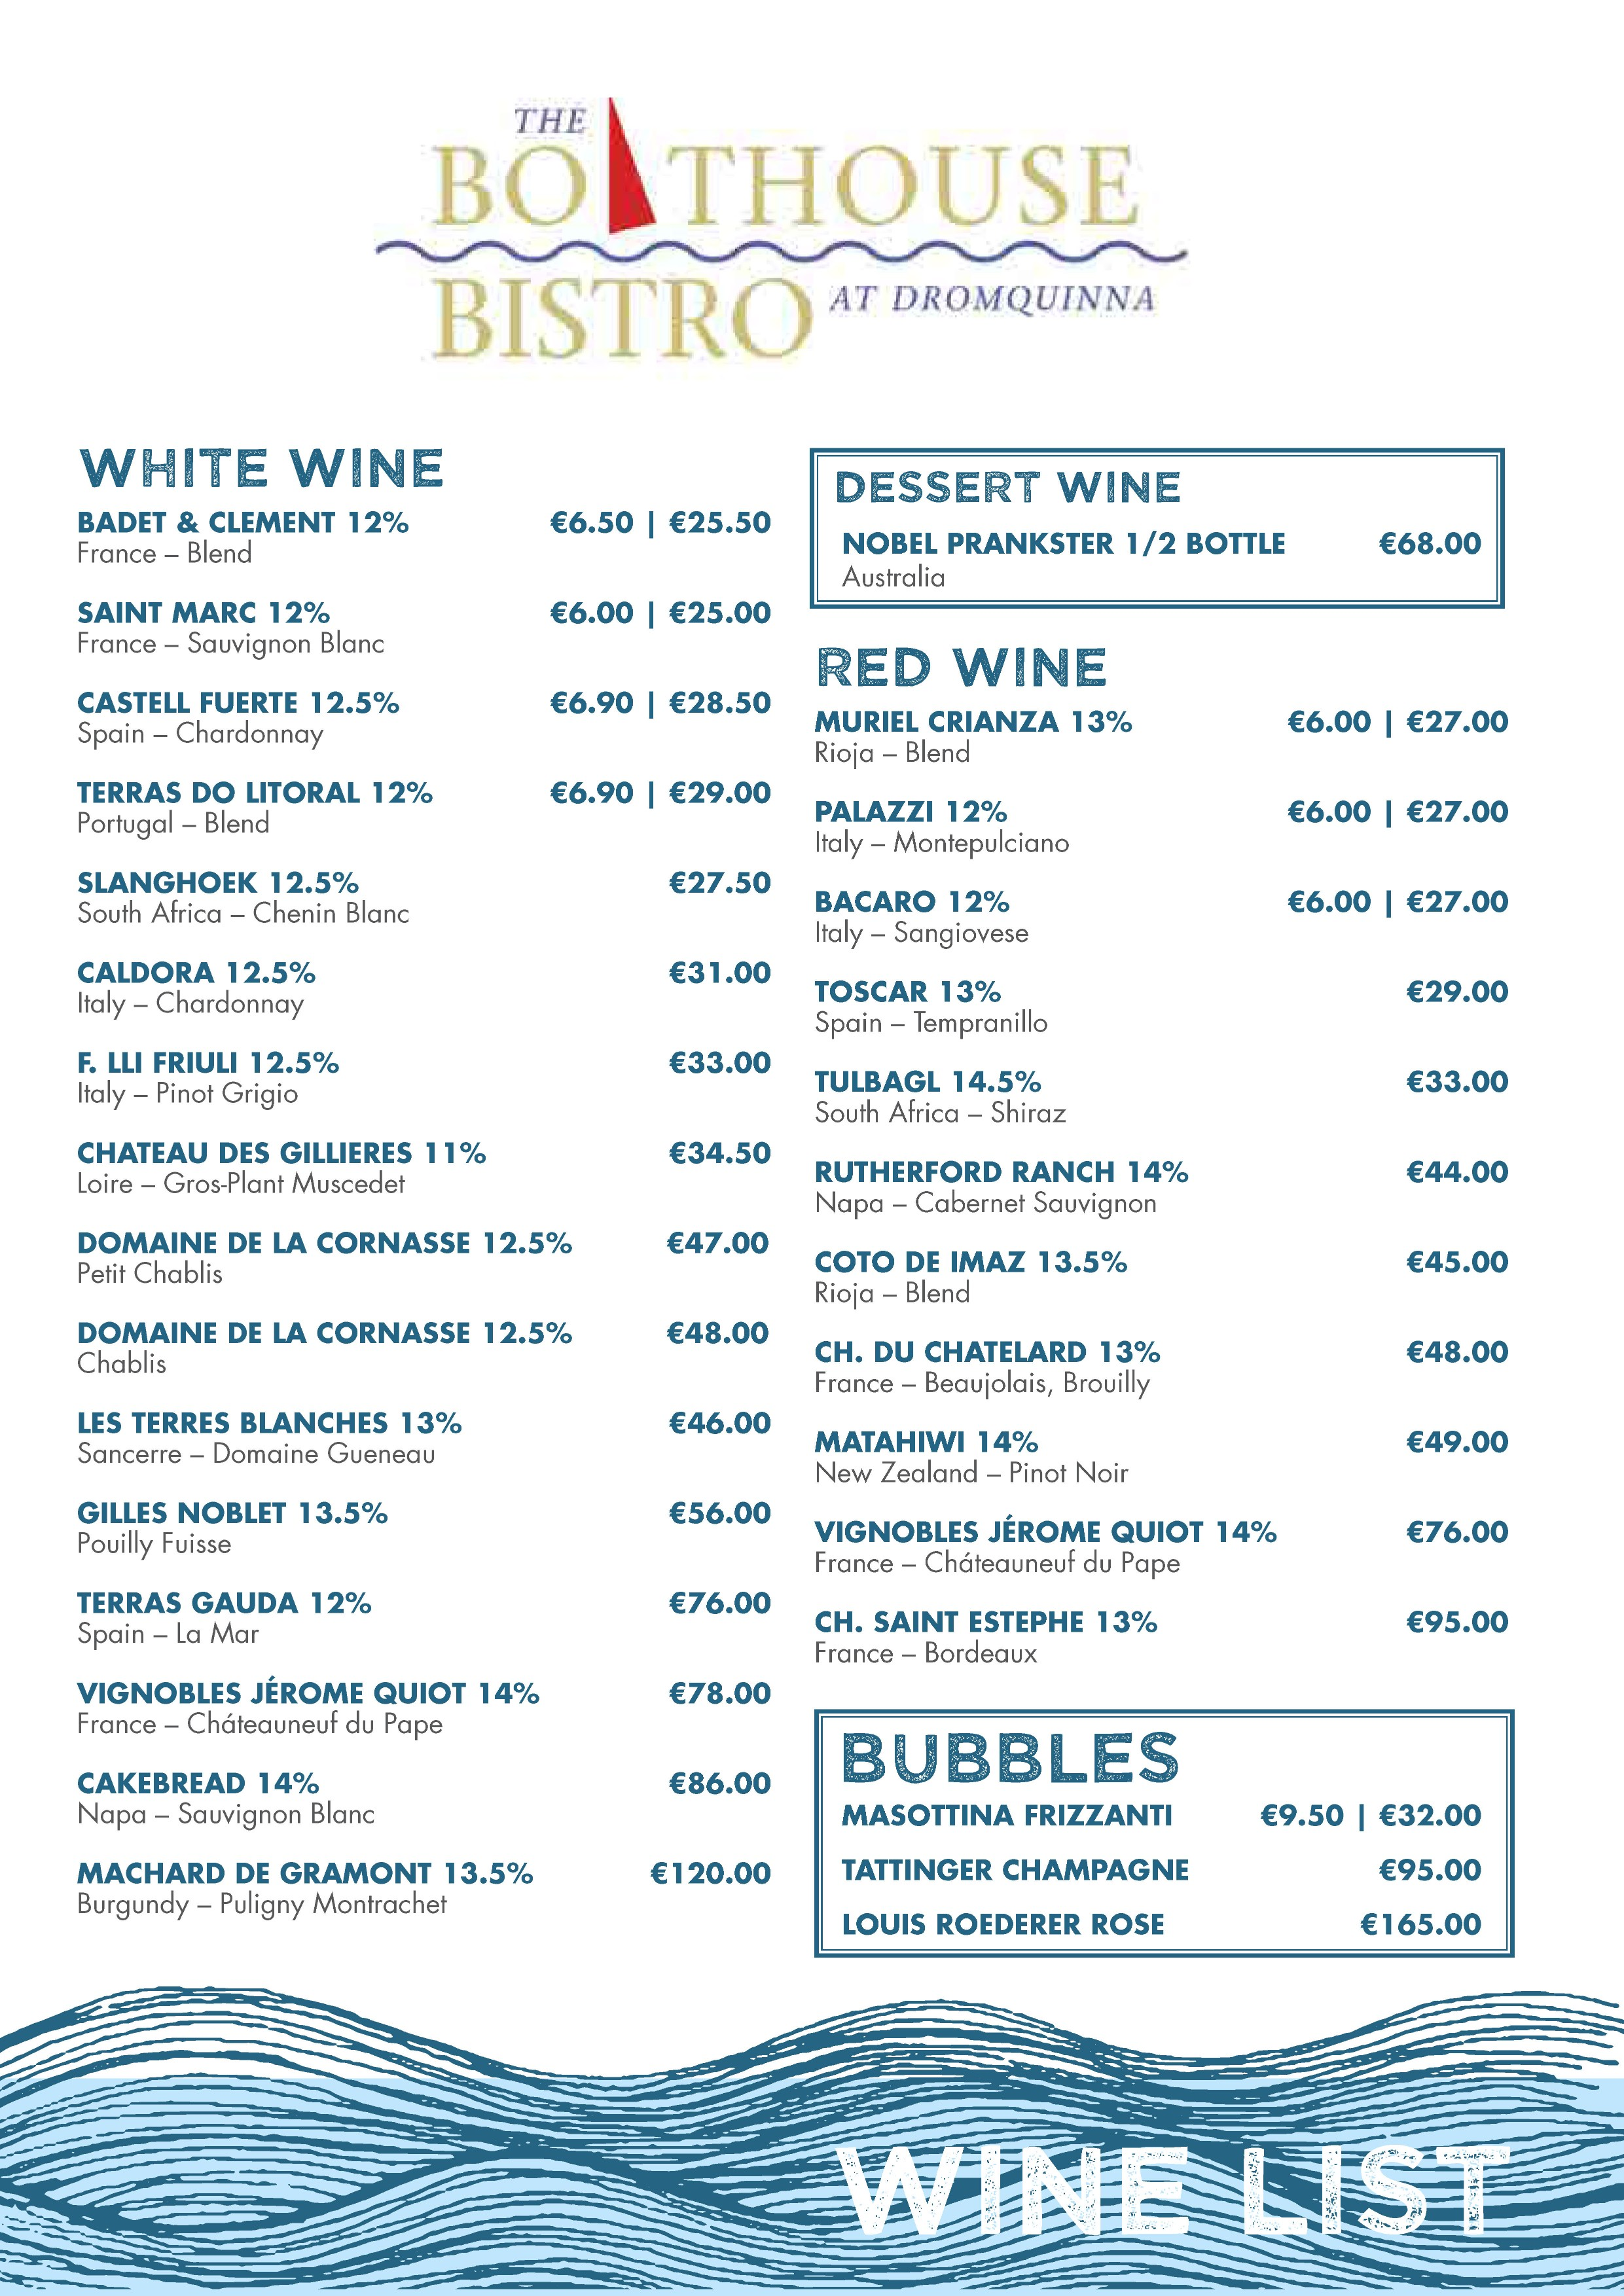 boathouse-menus-2017_Page_3